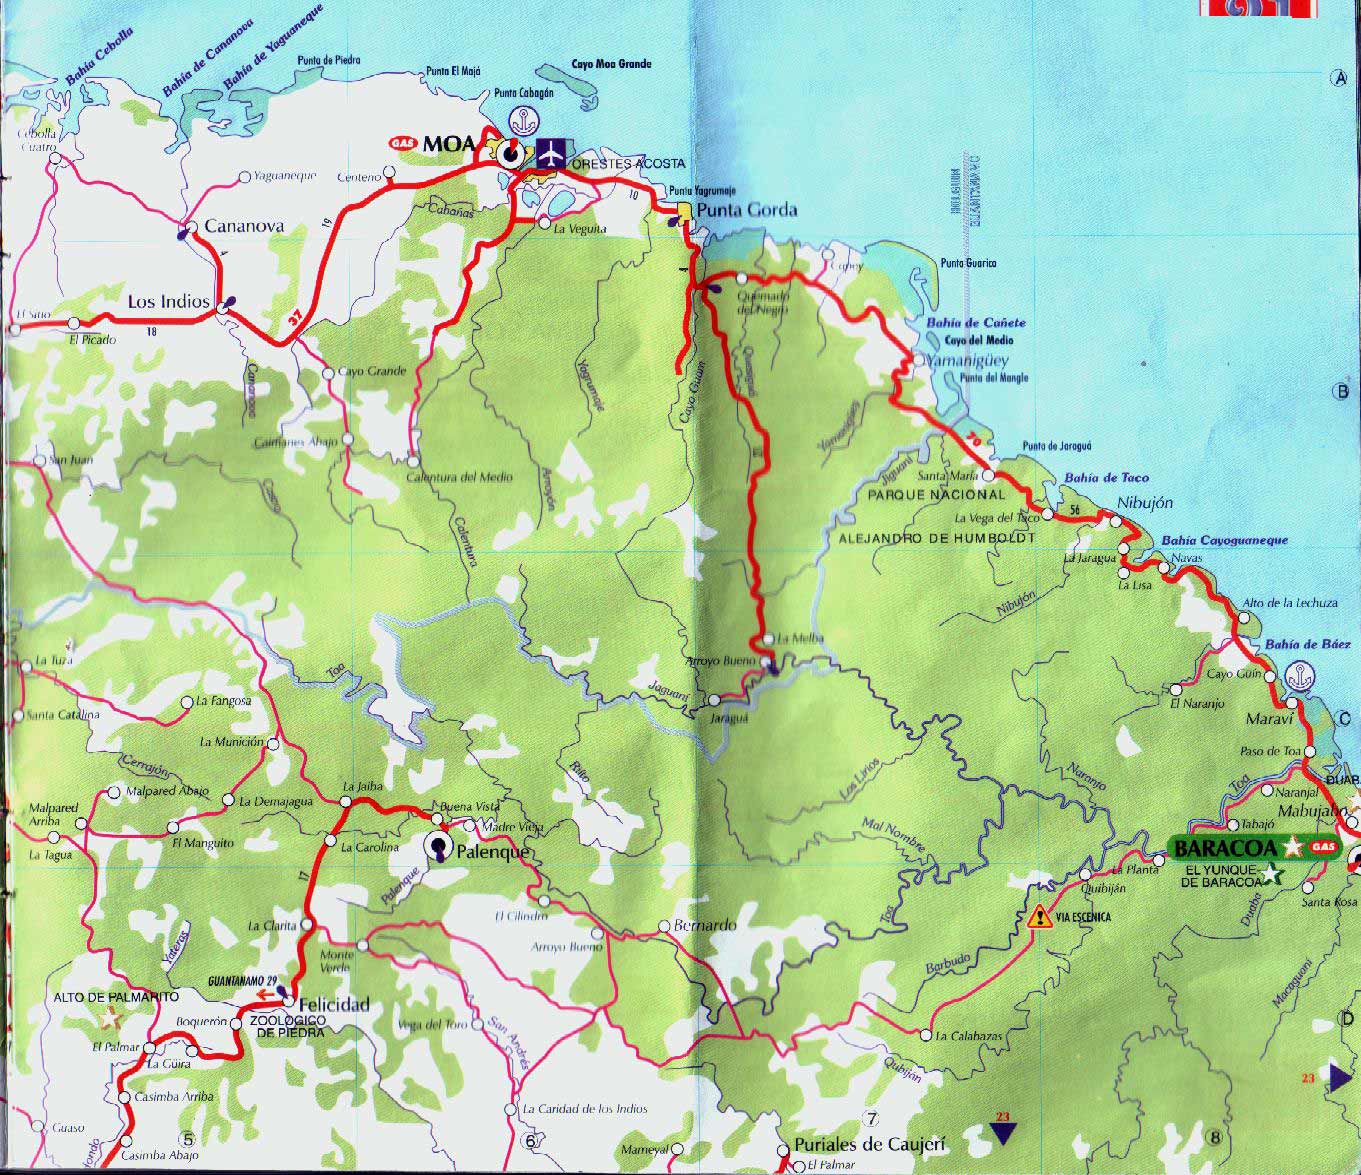 Map of Moa Baracoa large map